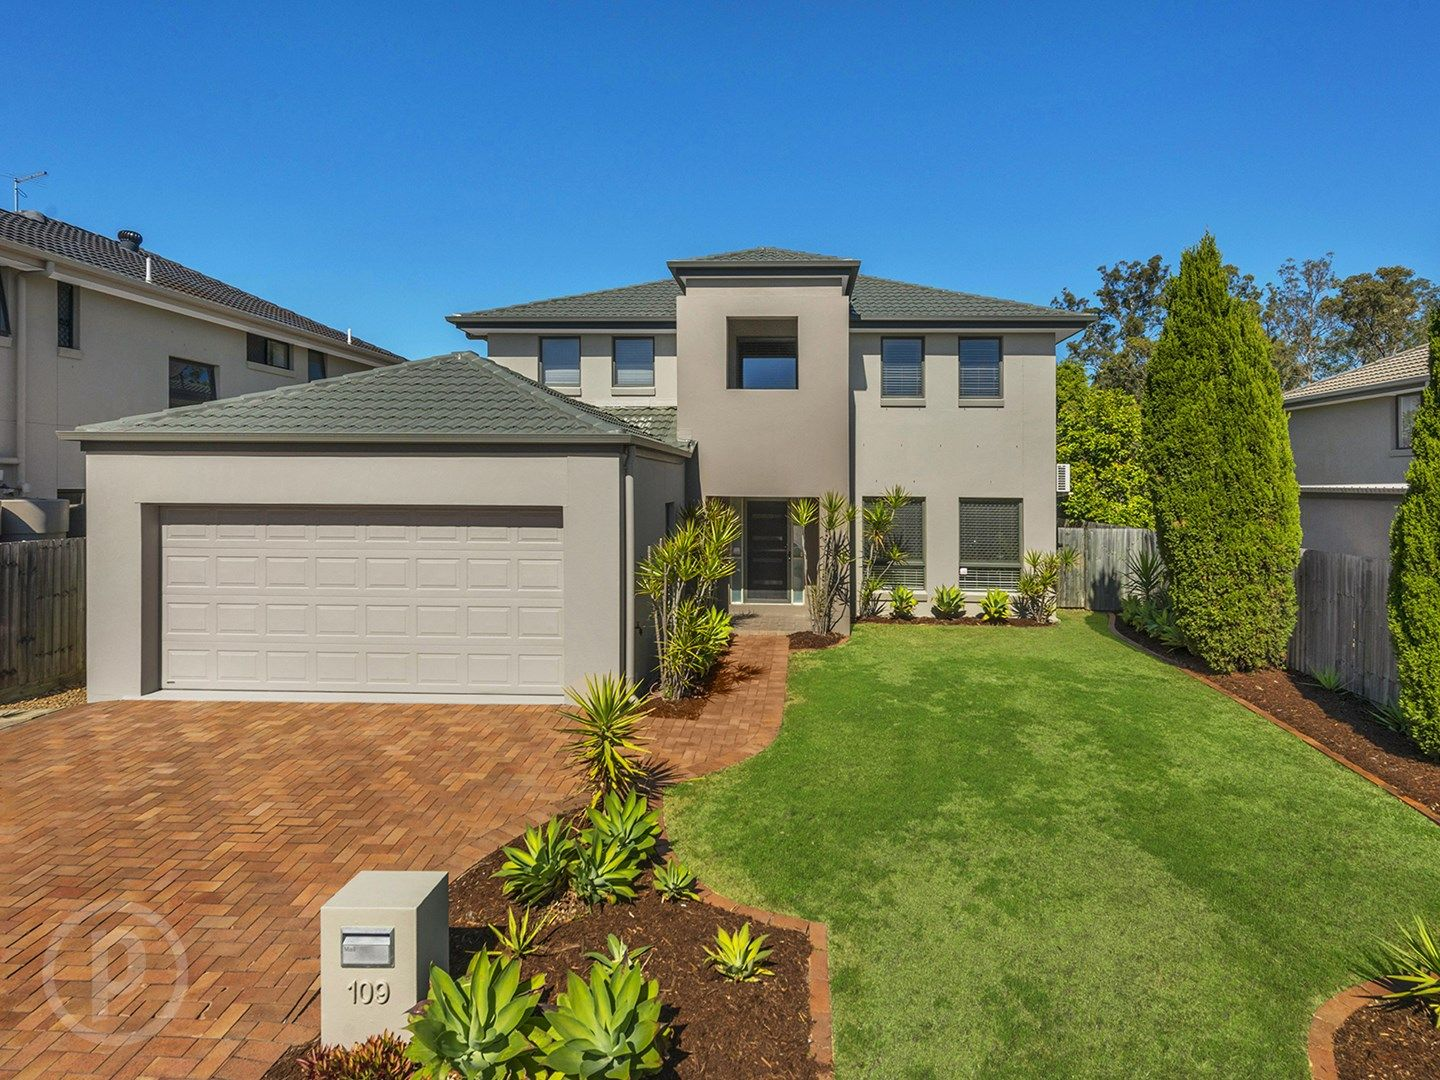 109 Tristania Way, Mount Gravatt East QLD 4122, Image 0